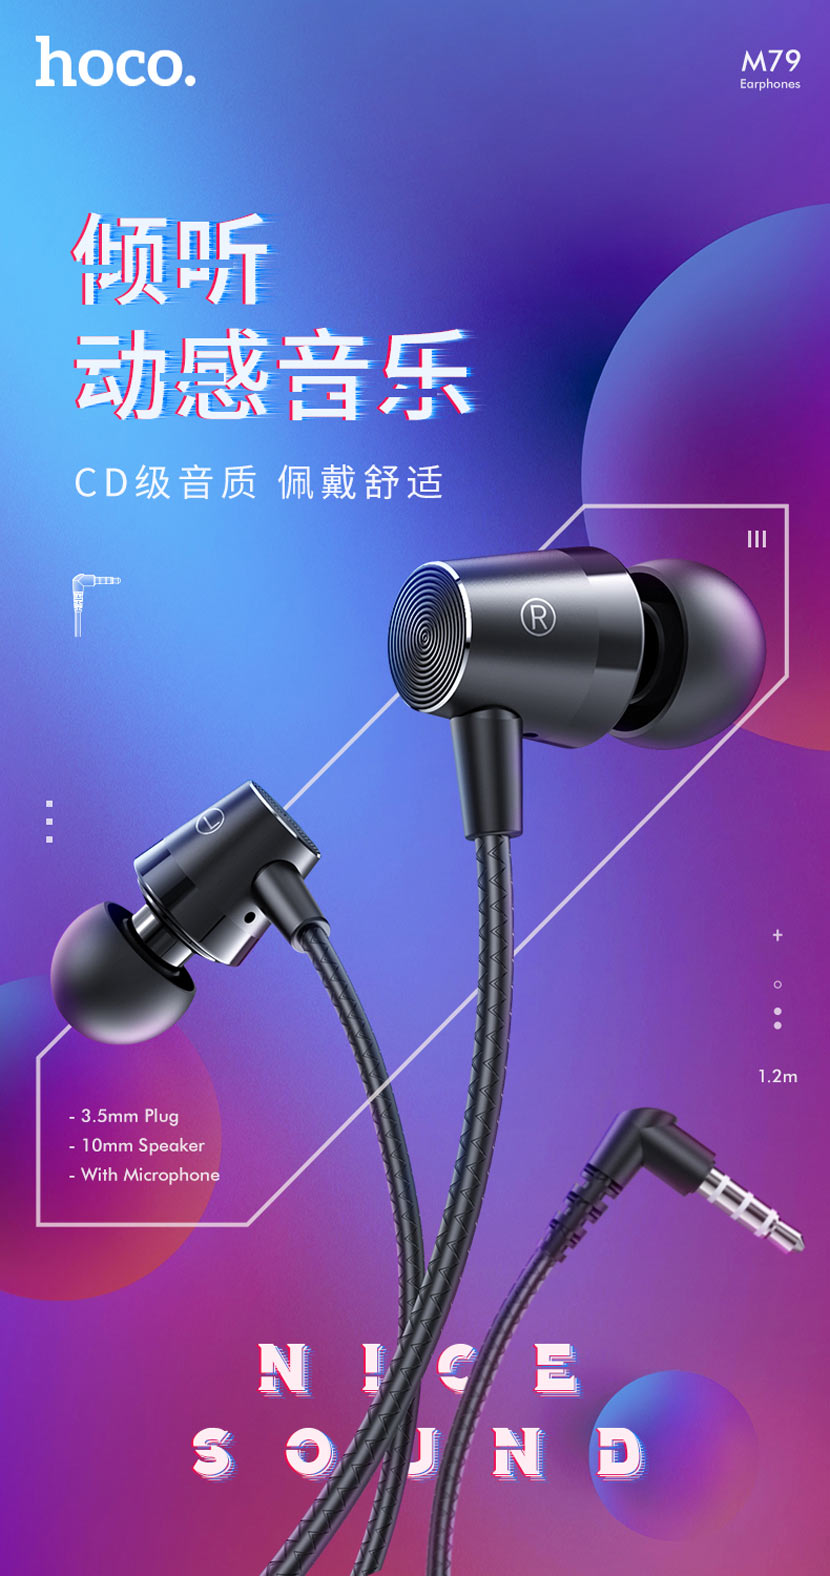 hoco news m79 cresta universal earphones with microphone cn